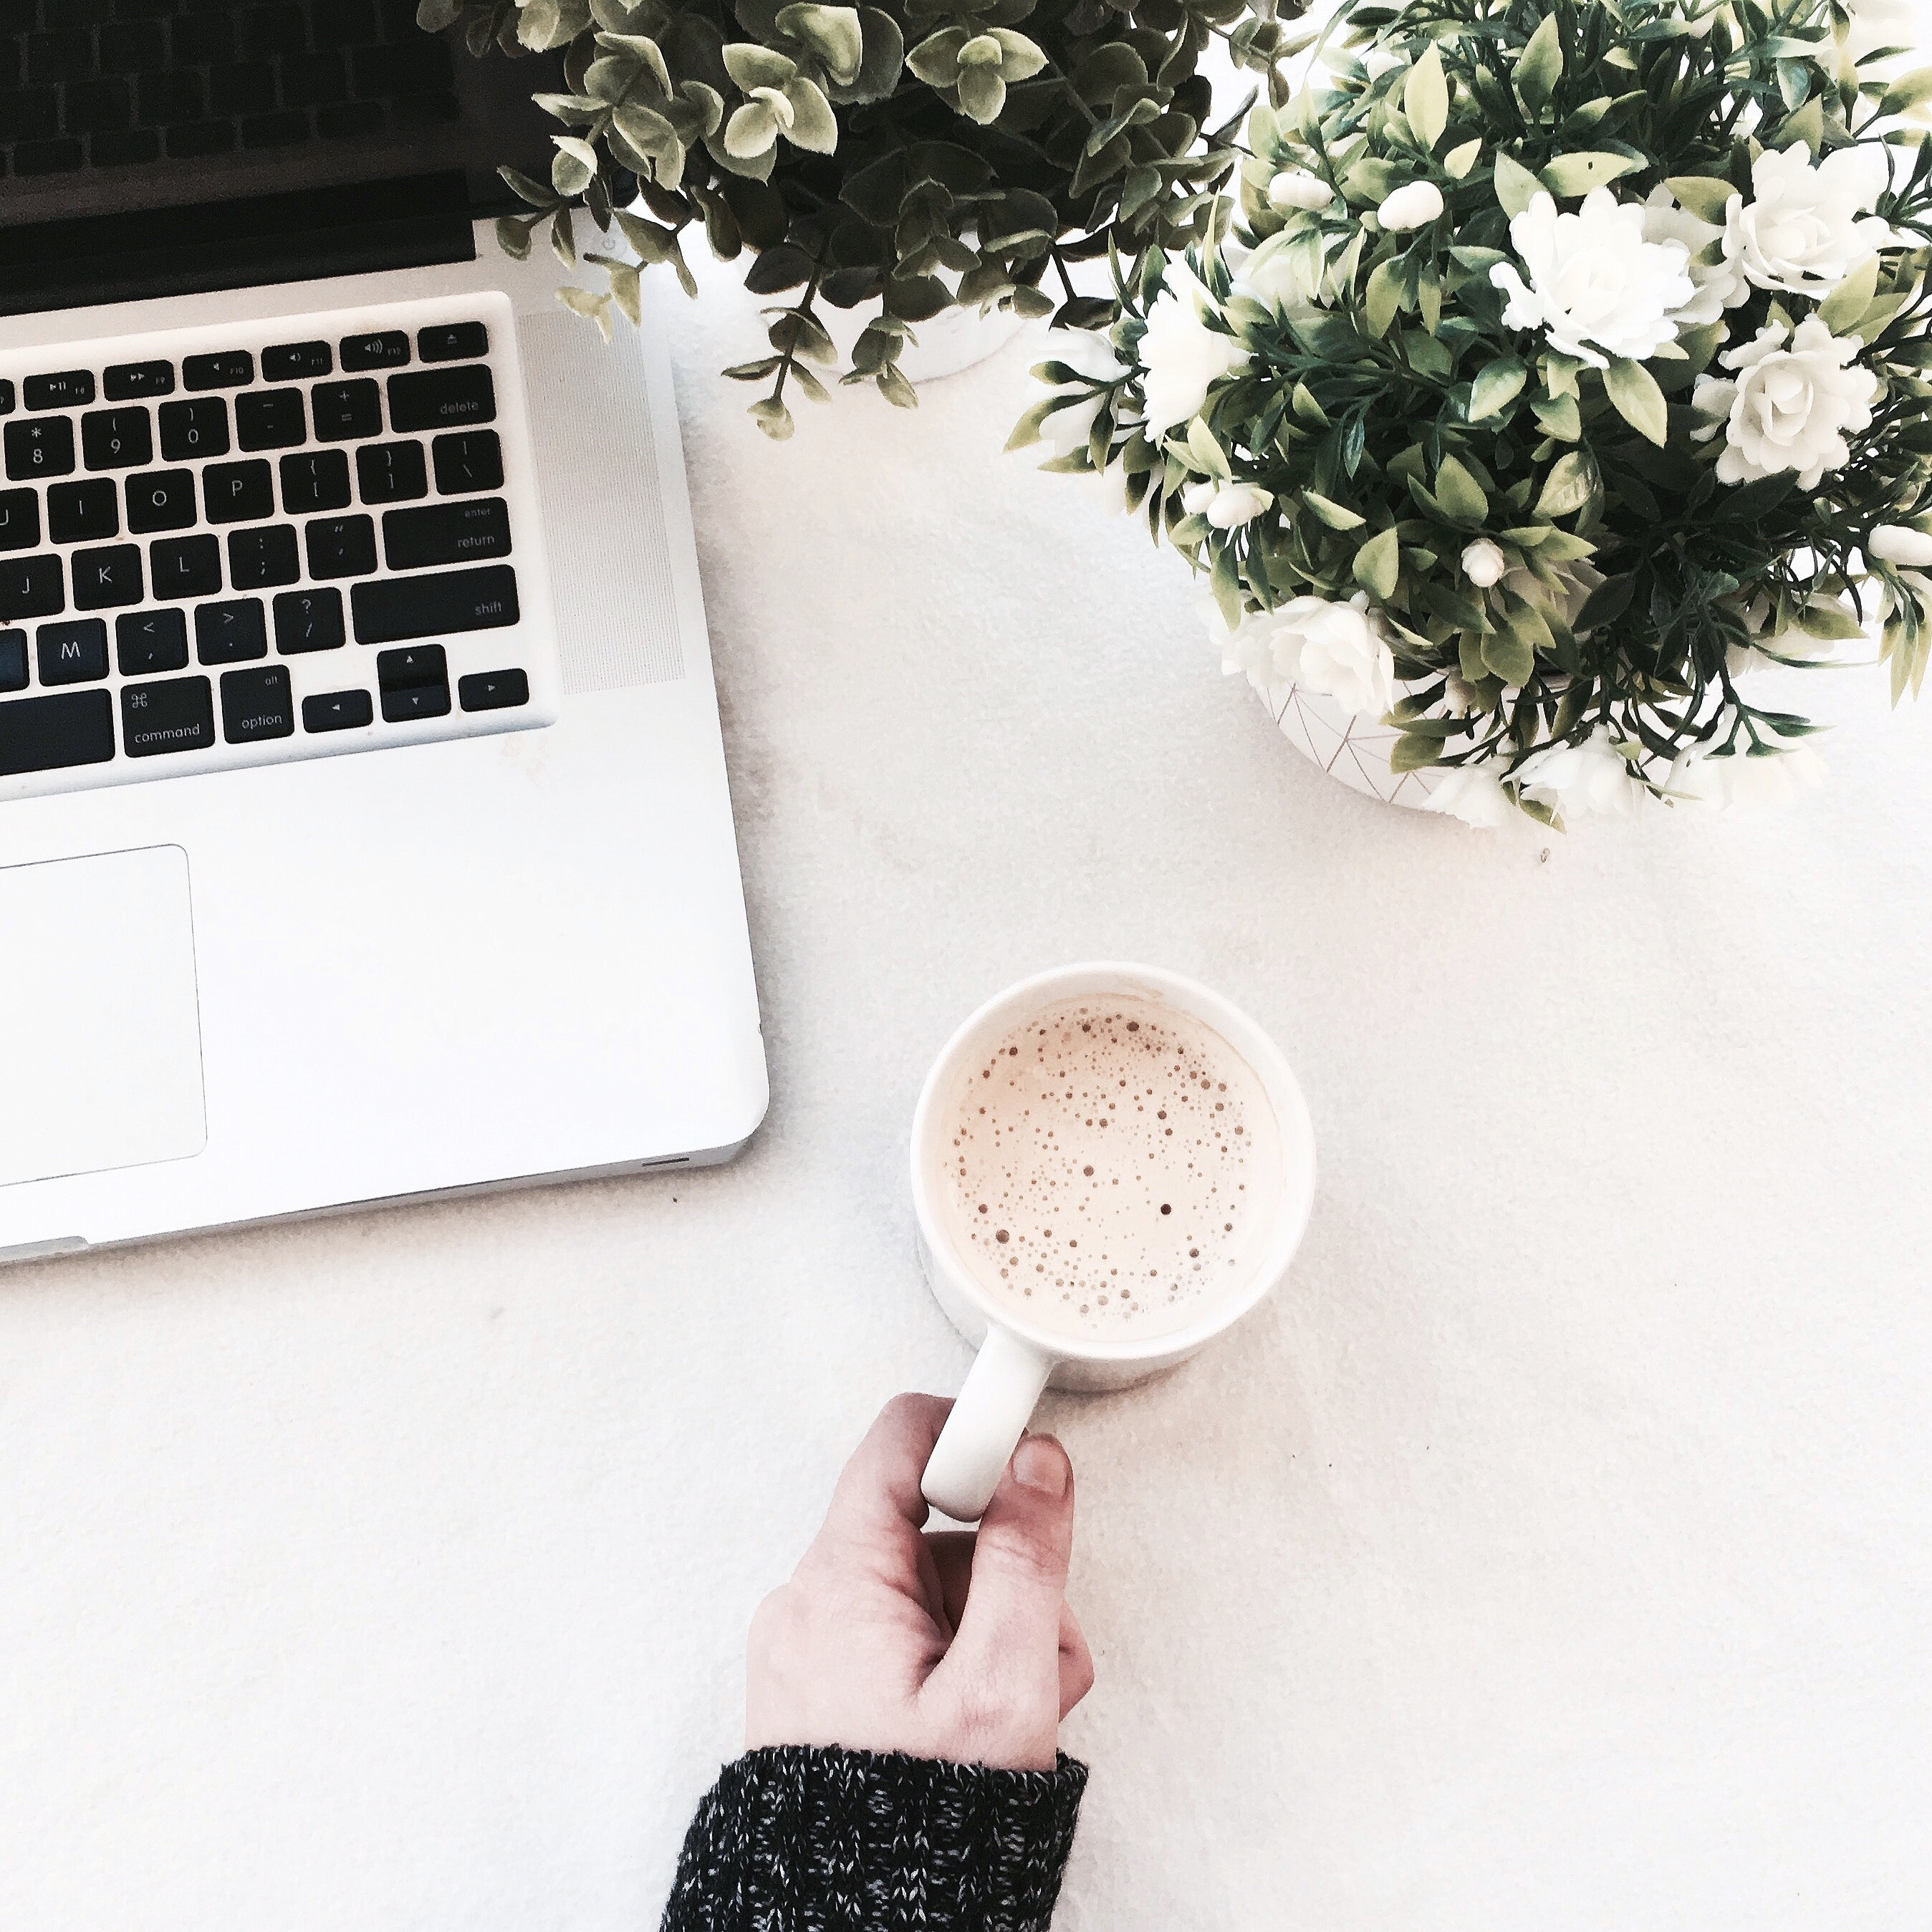 Person Holding Cup of Coffee, Indoors, Laptop, Hot, Health, HQ Photo